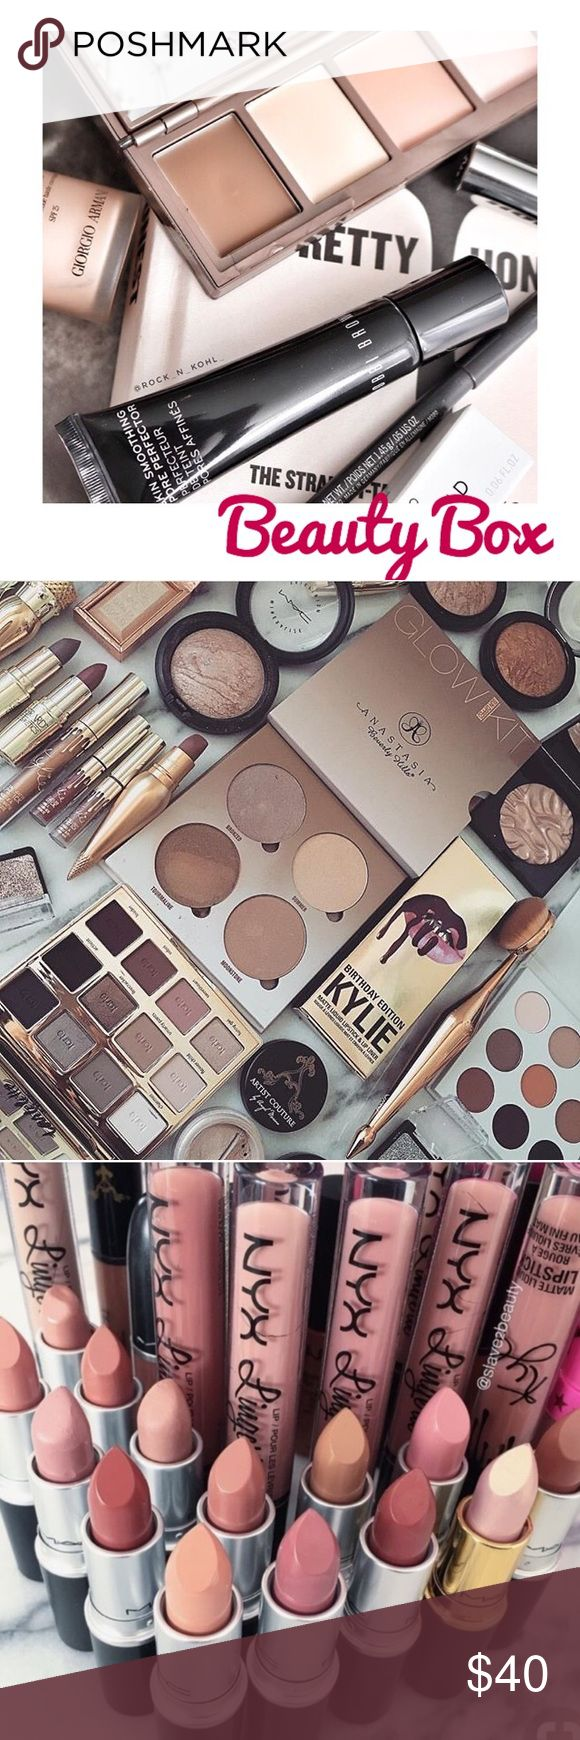 Beauty Sample and Full Size Box/Bundle! This listing is